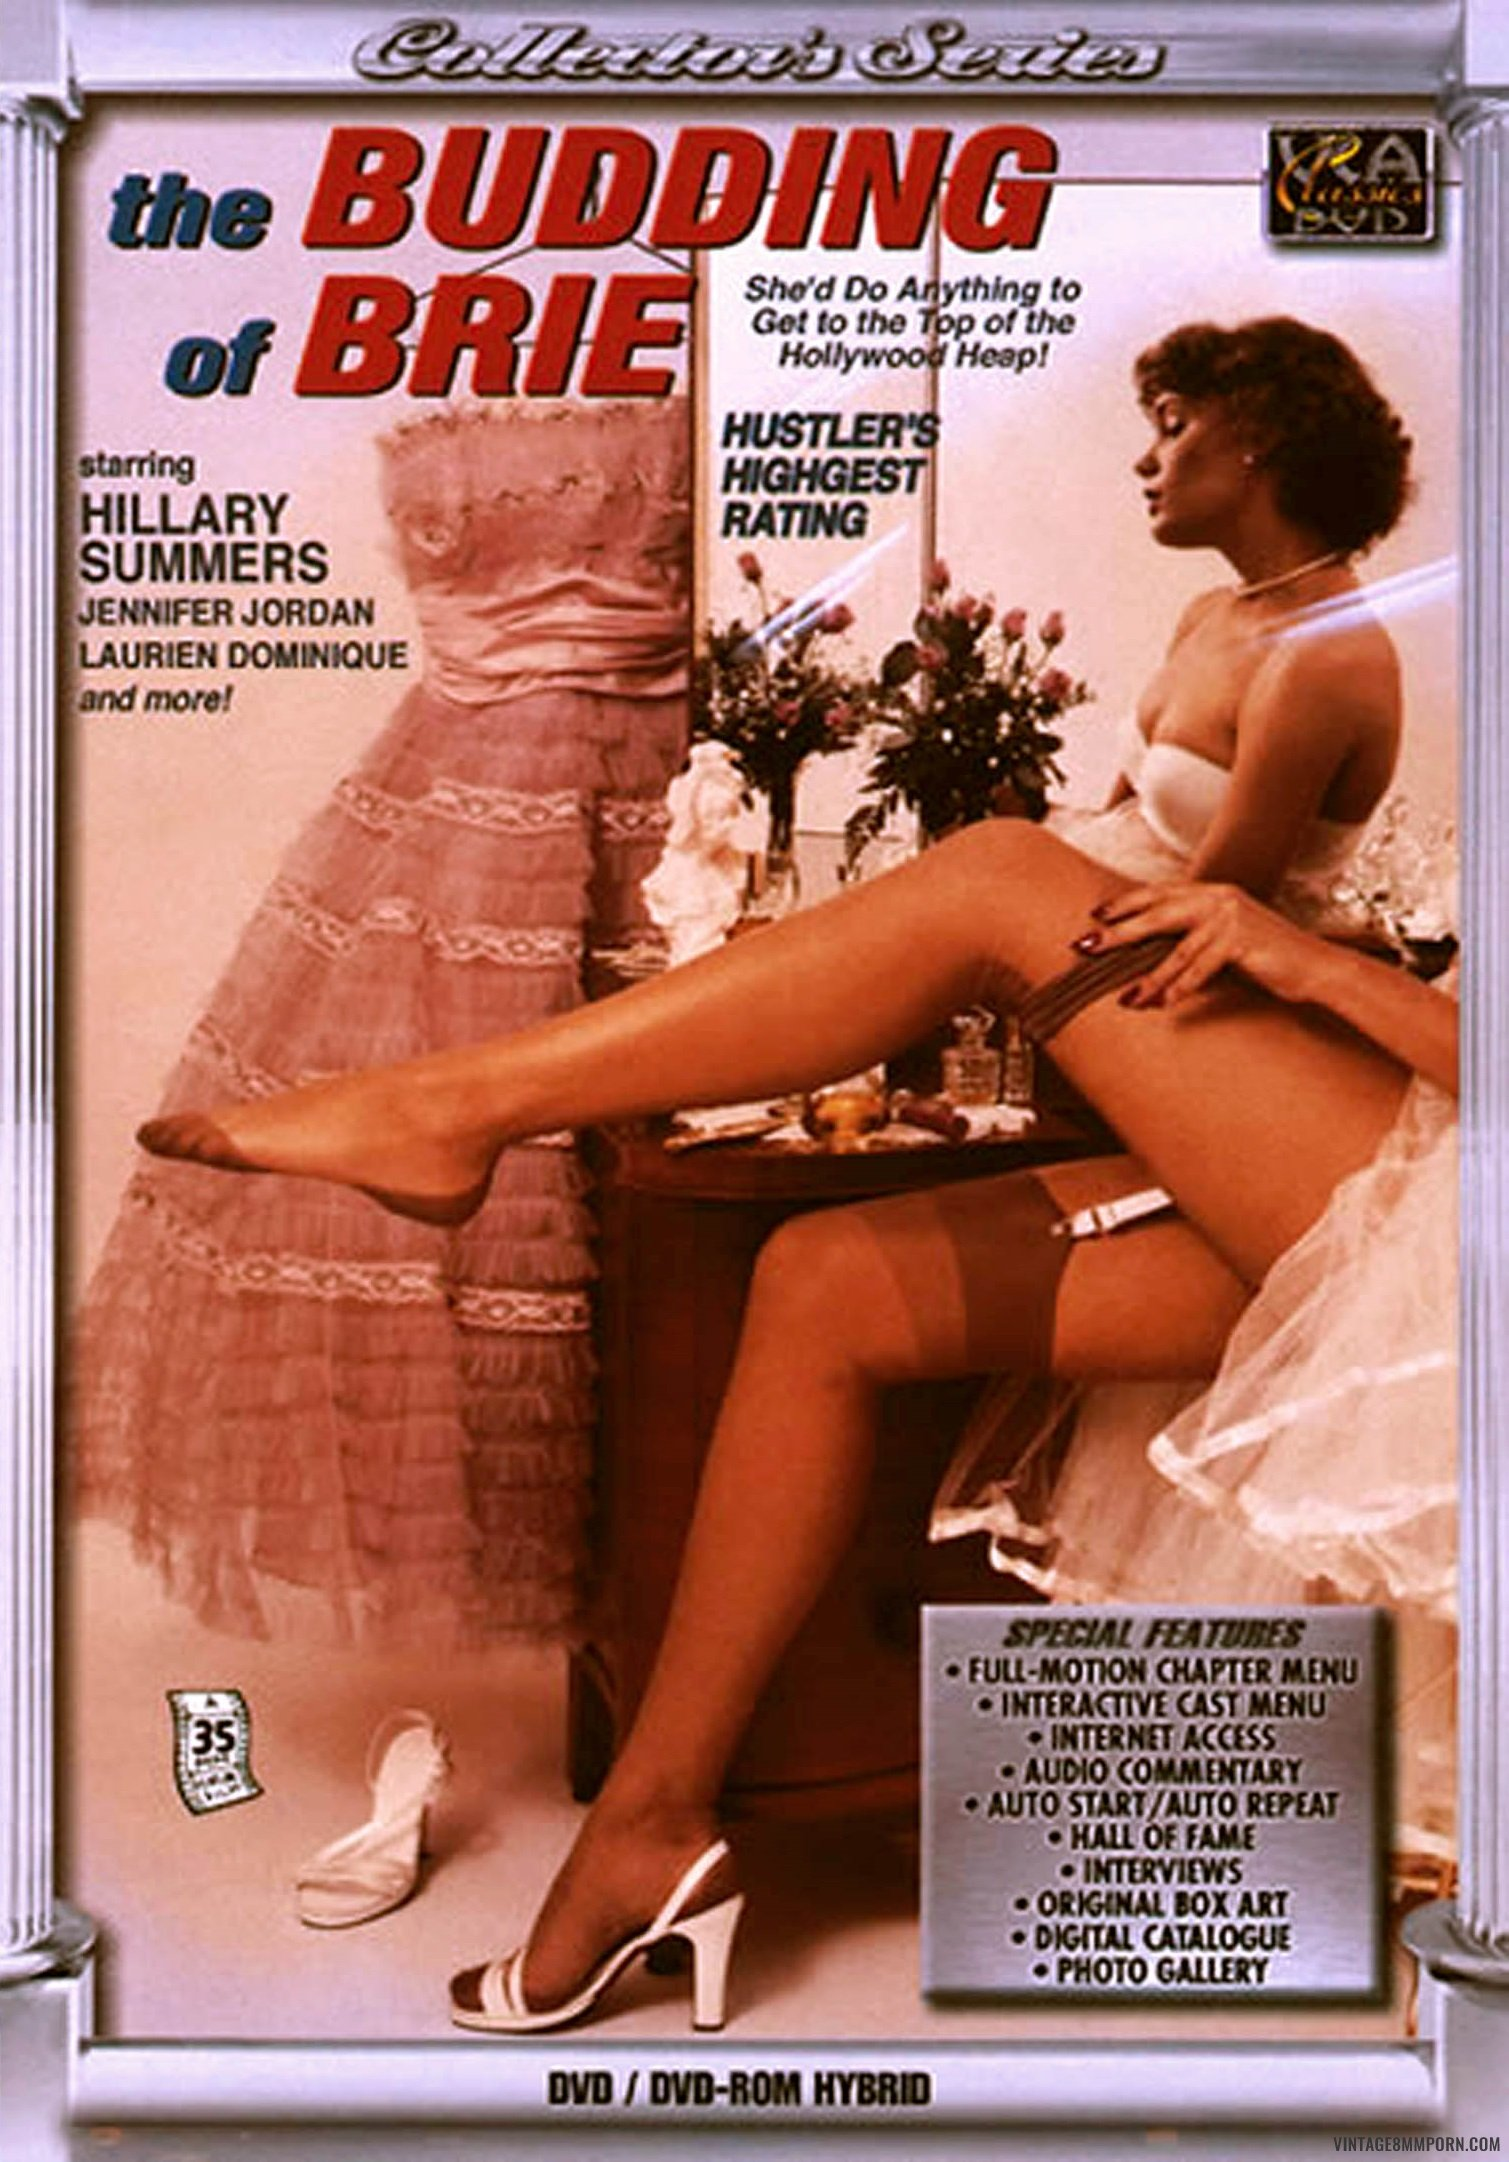 The Budding of Brie (1980)